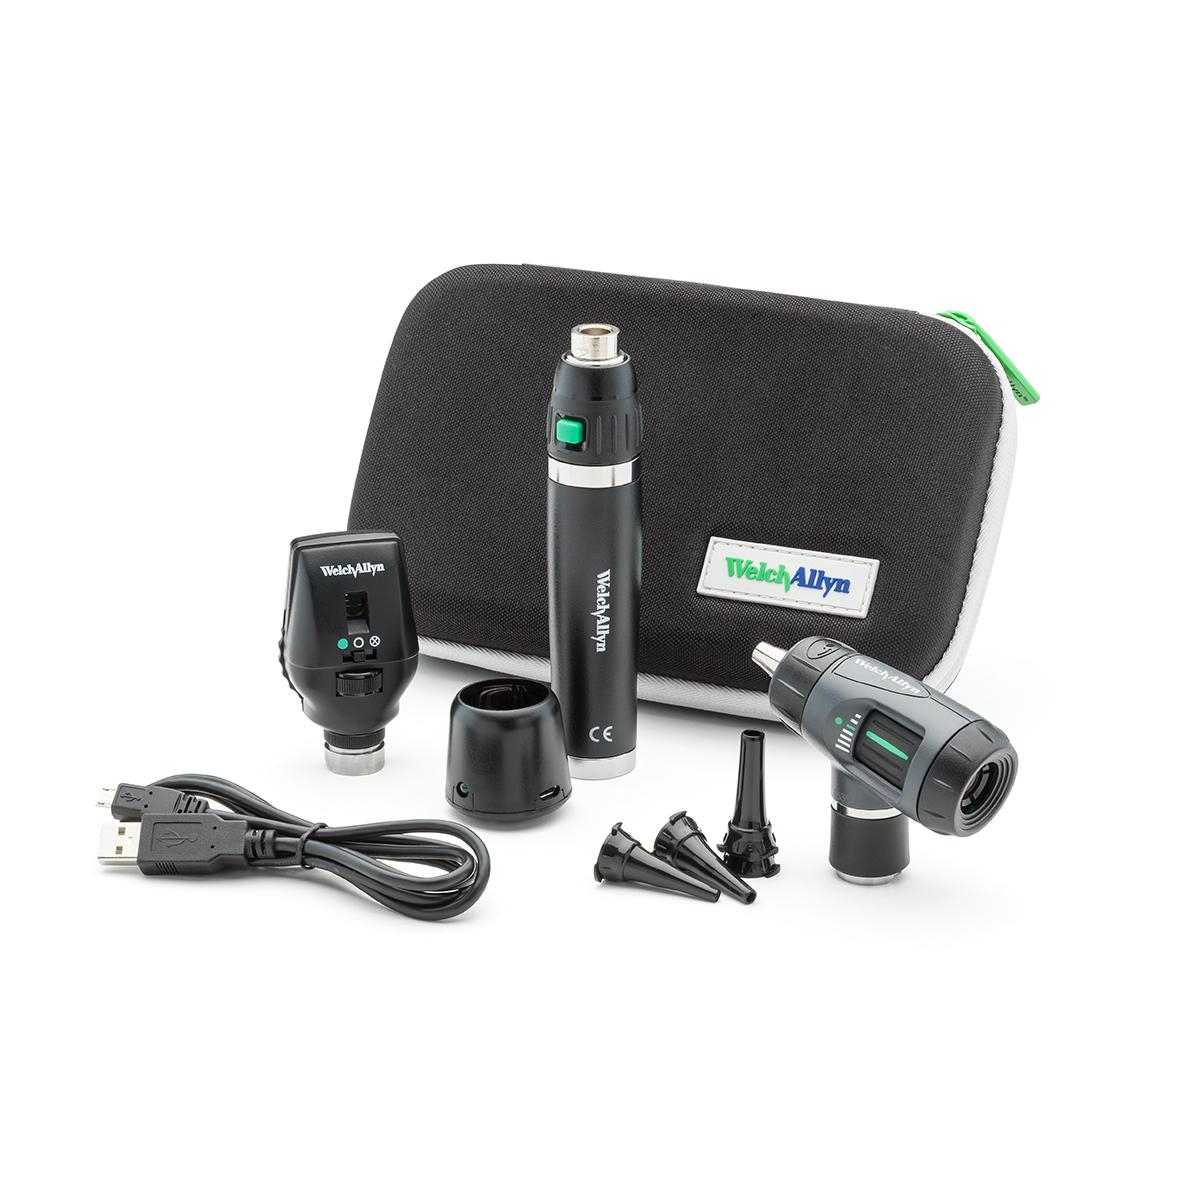 A Welch Allyn 97200-MSL Diagnostic Set, including otoscope, ophthalmoscope, handle, USB charger and zippered carry case.